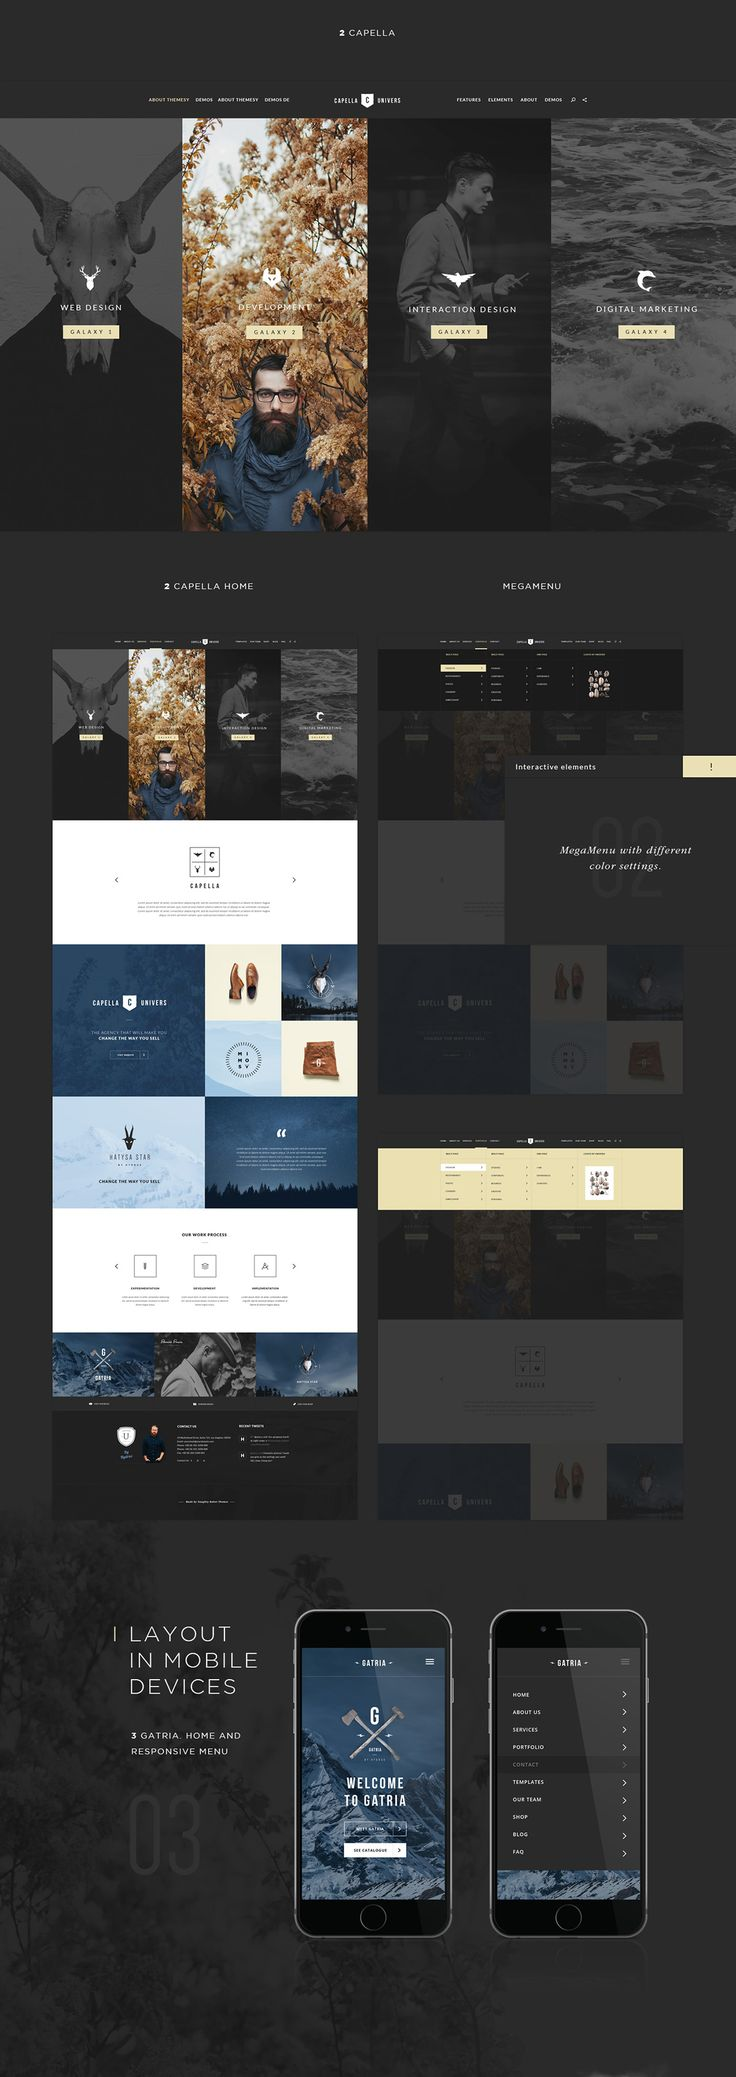 Hydrus on Web Design Served